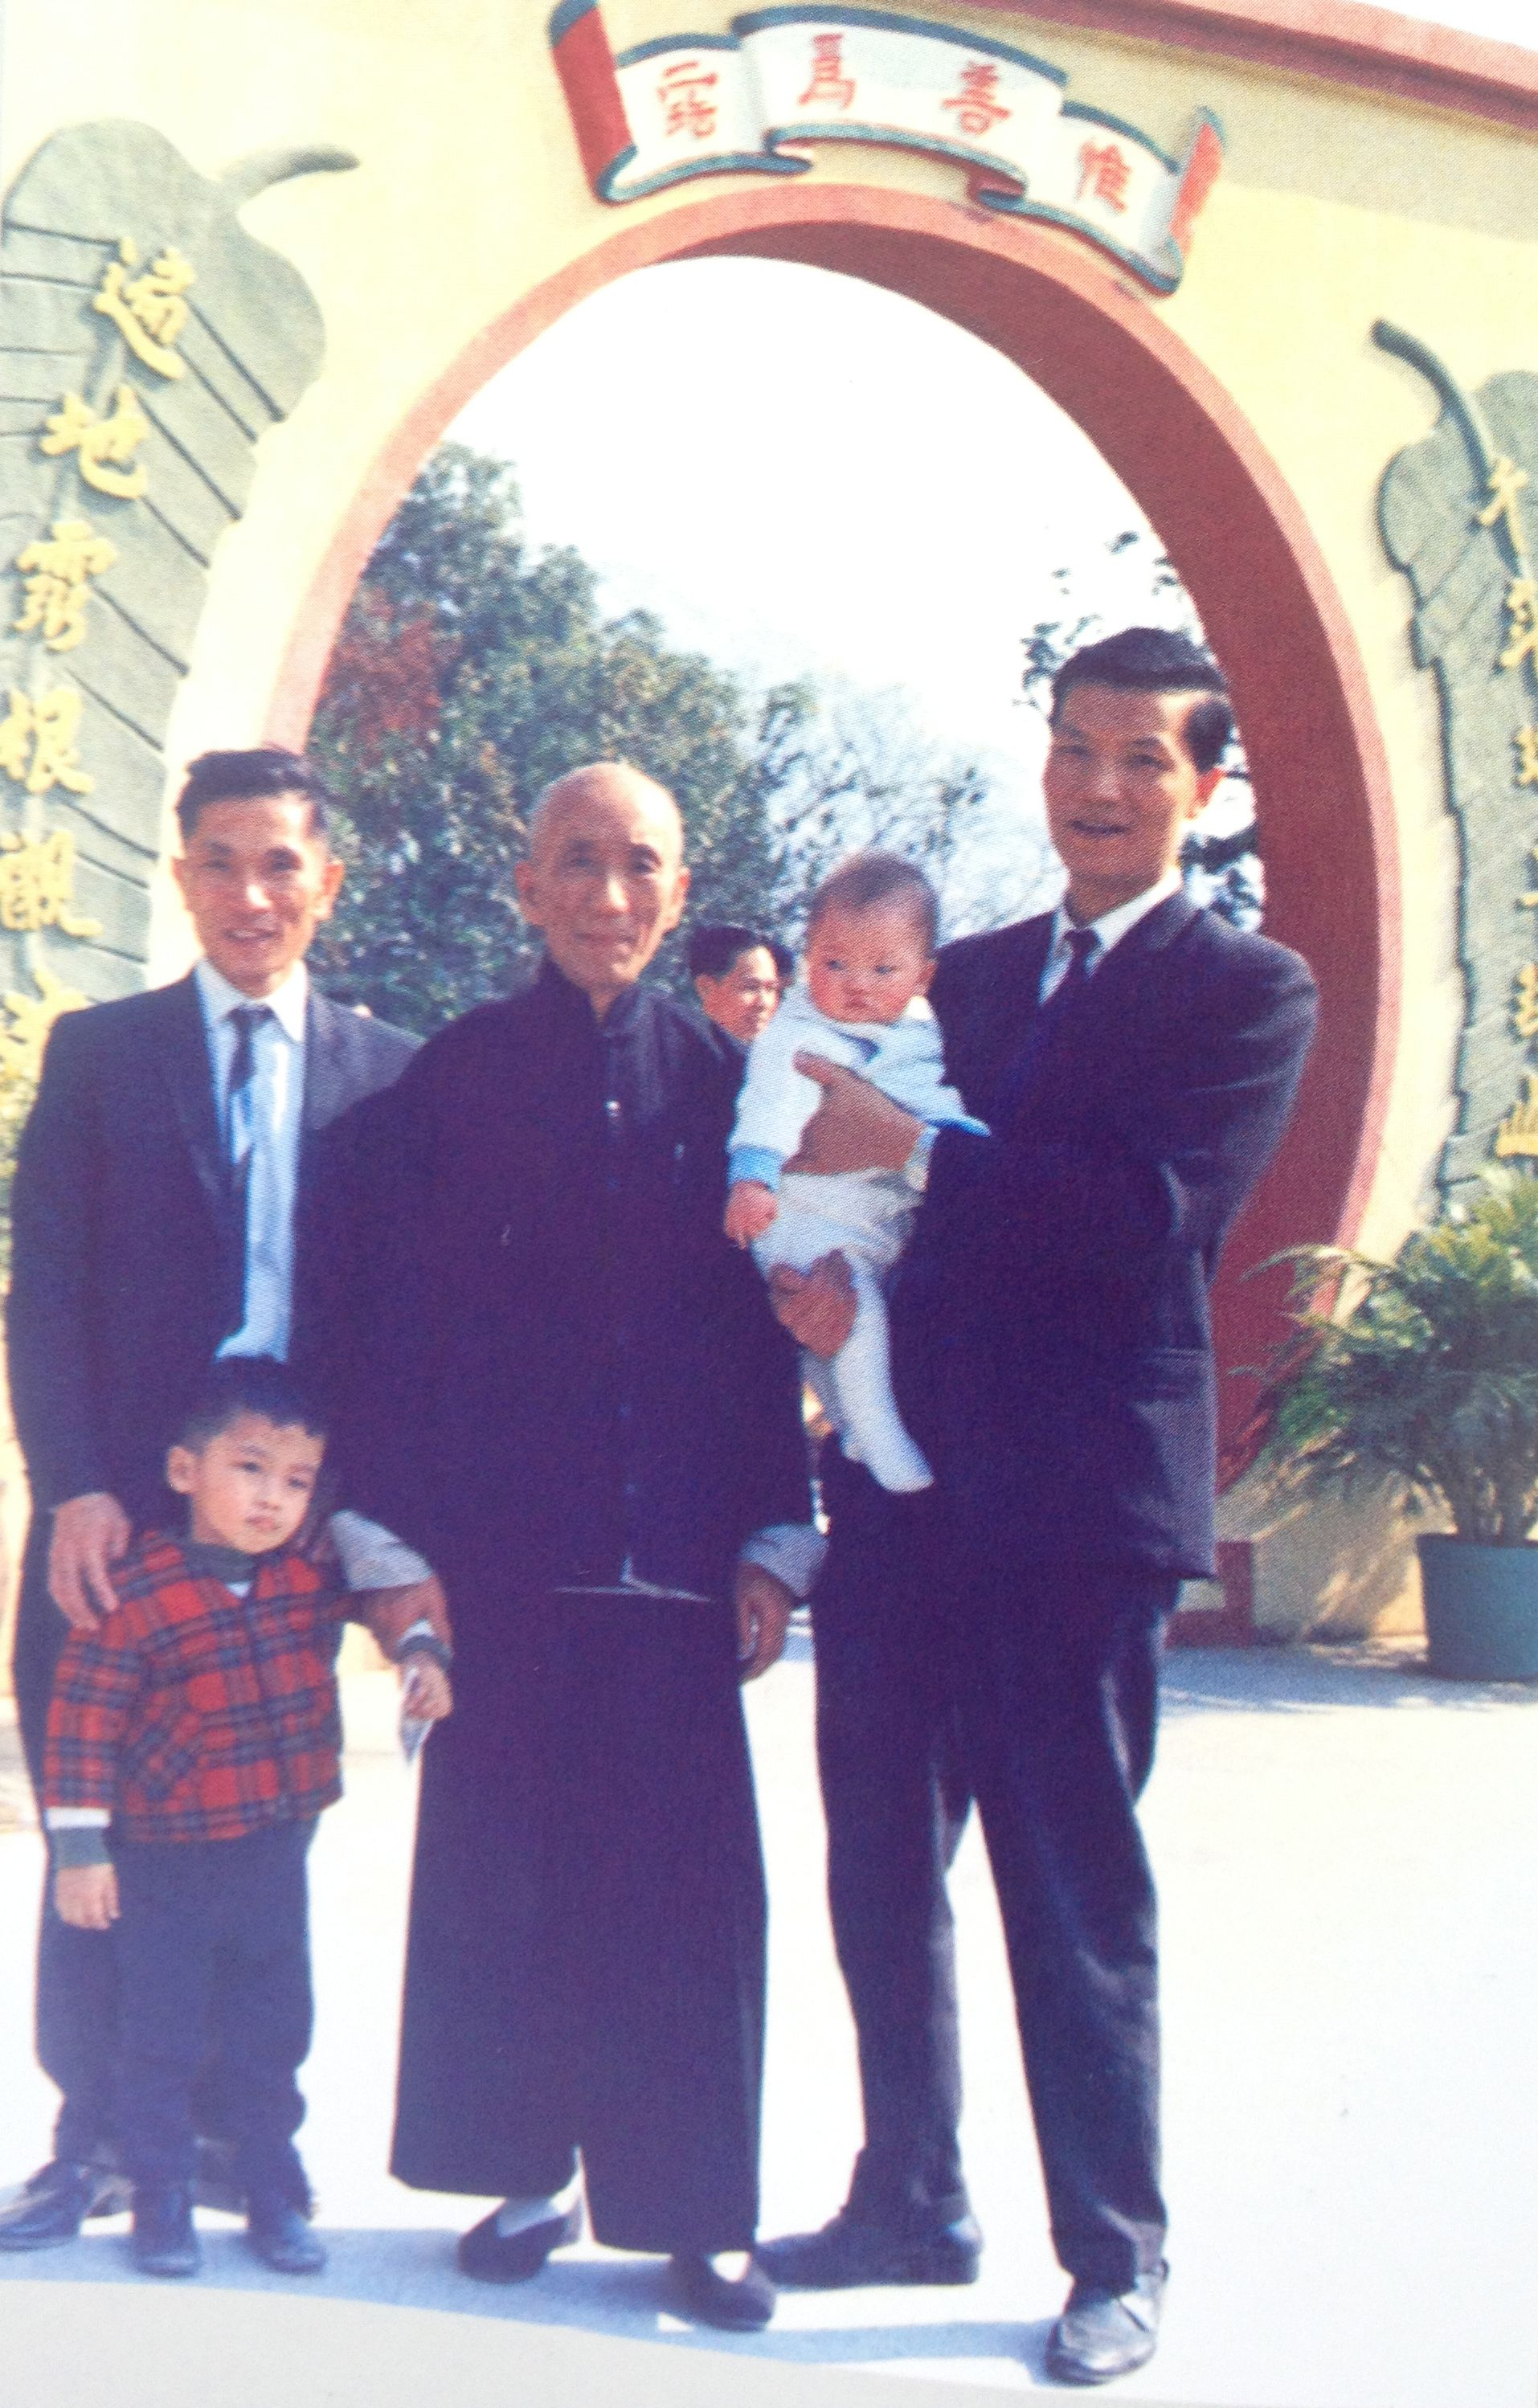 SWK Ip Man - Ip Ching and Ip Chun and Grandsons (Colour ...Yip Man Son